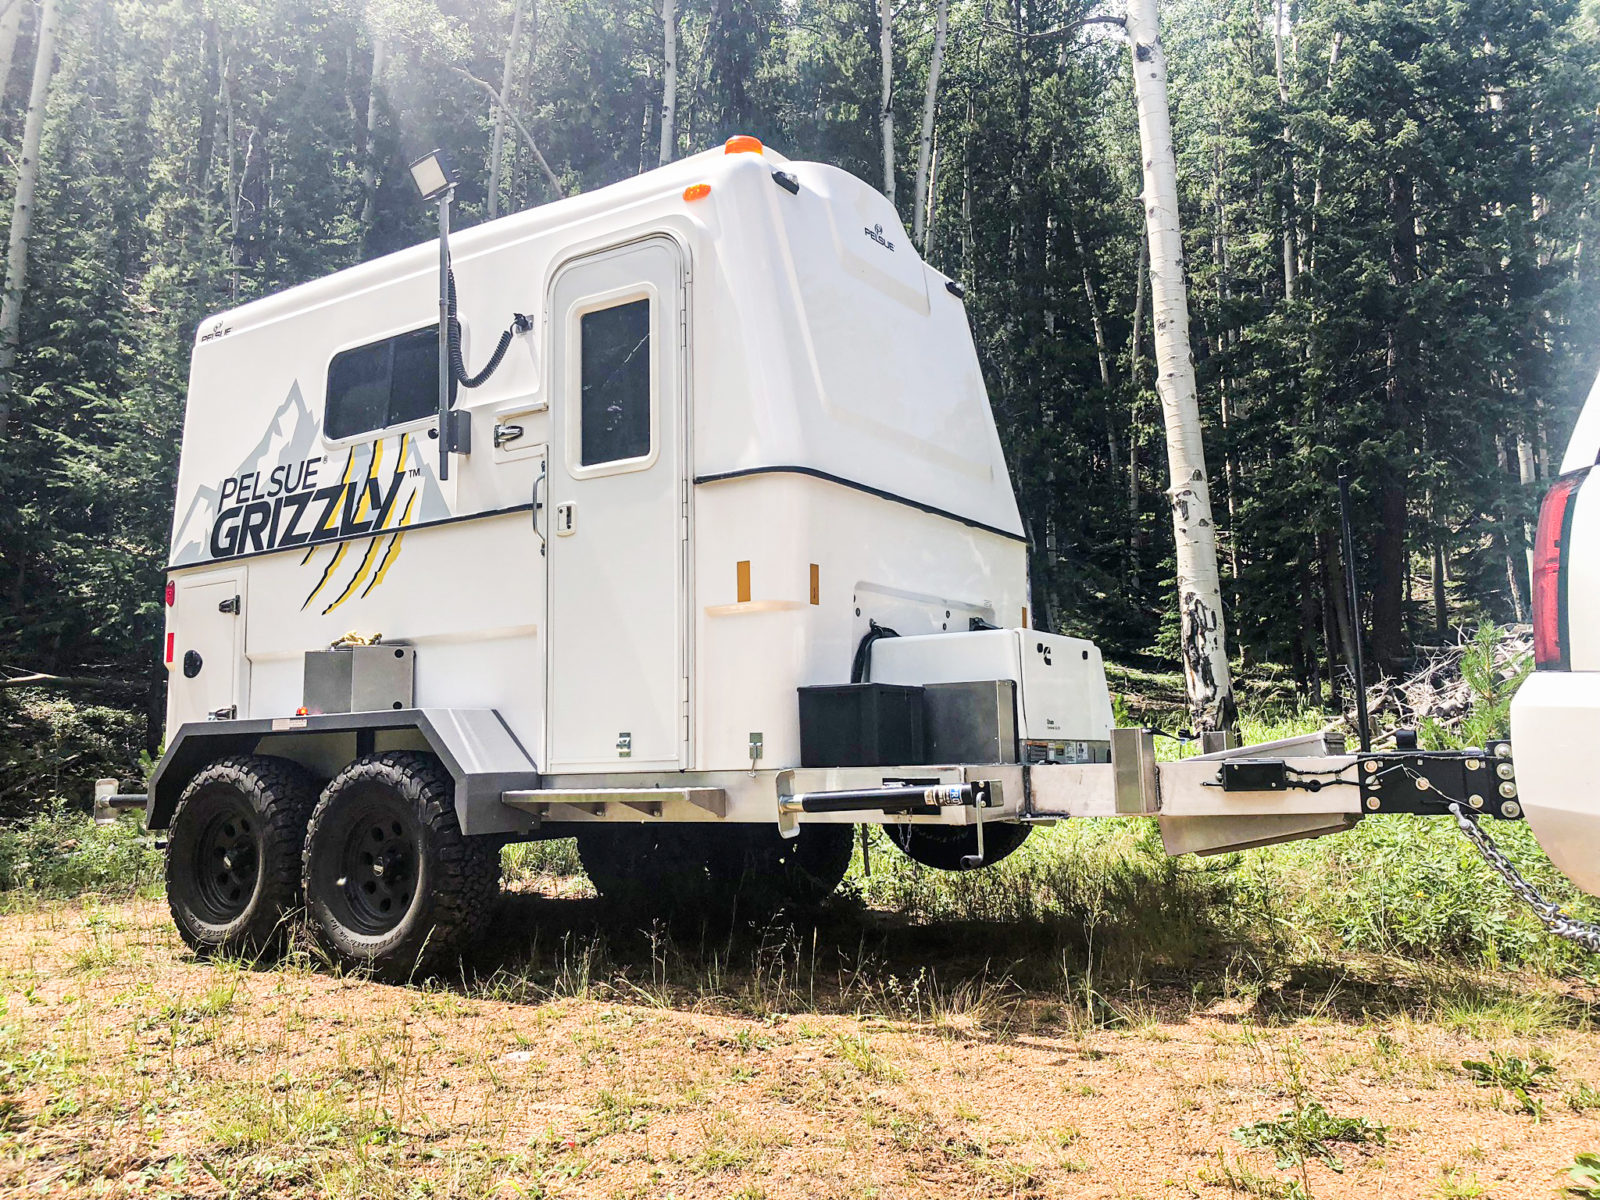 The Pelsue FiberLite Grizzle fiber splicing trailer parked in a mountain forest.